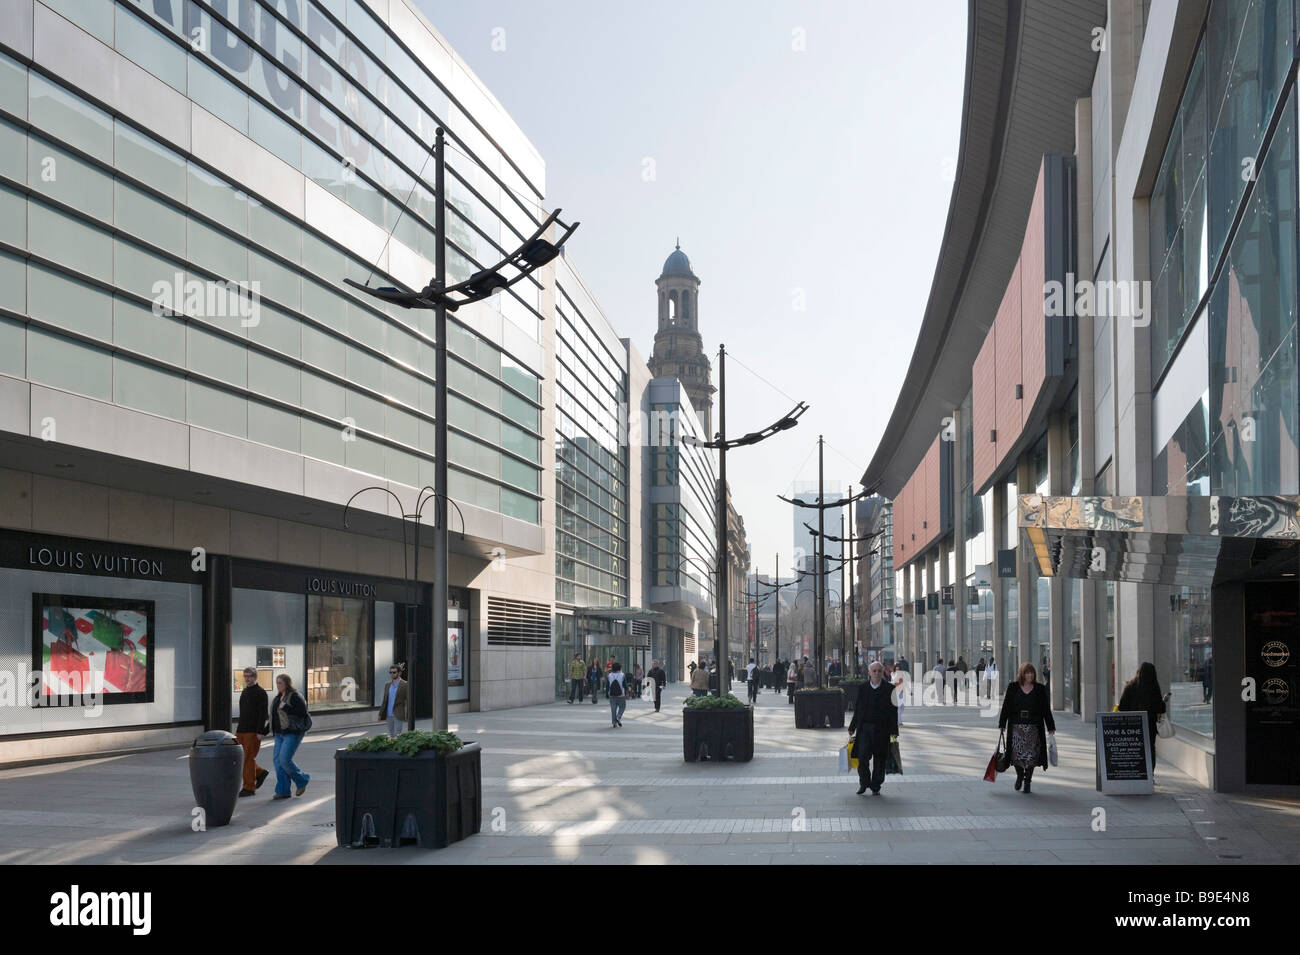 Major shops and department stores on New Cathedral Street in the city centre, Manchester, England - Stock Image